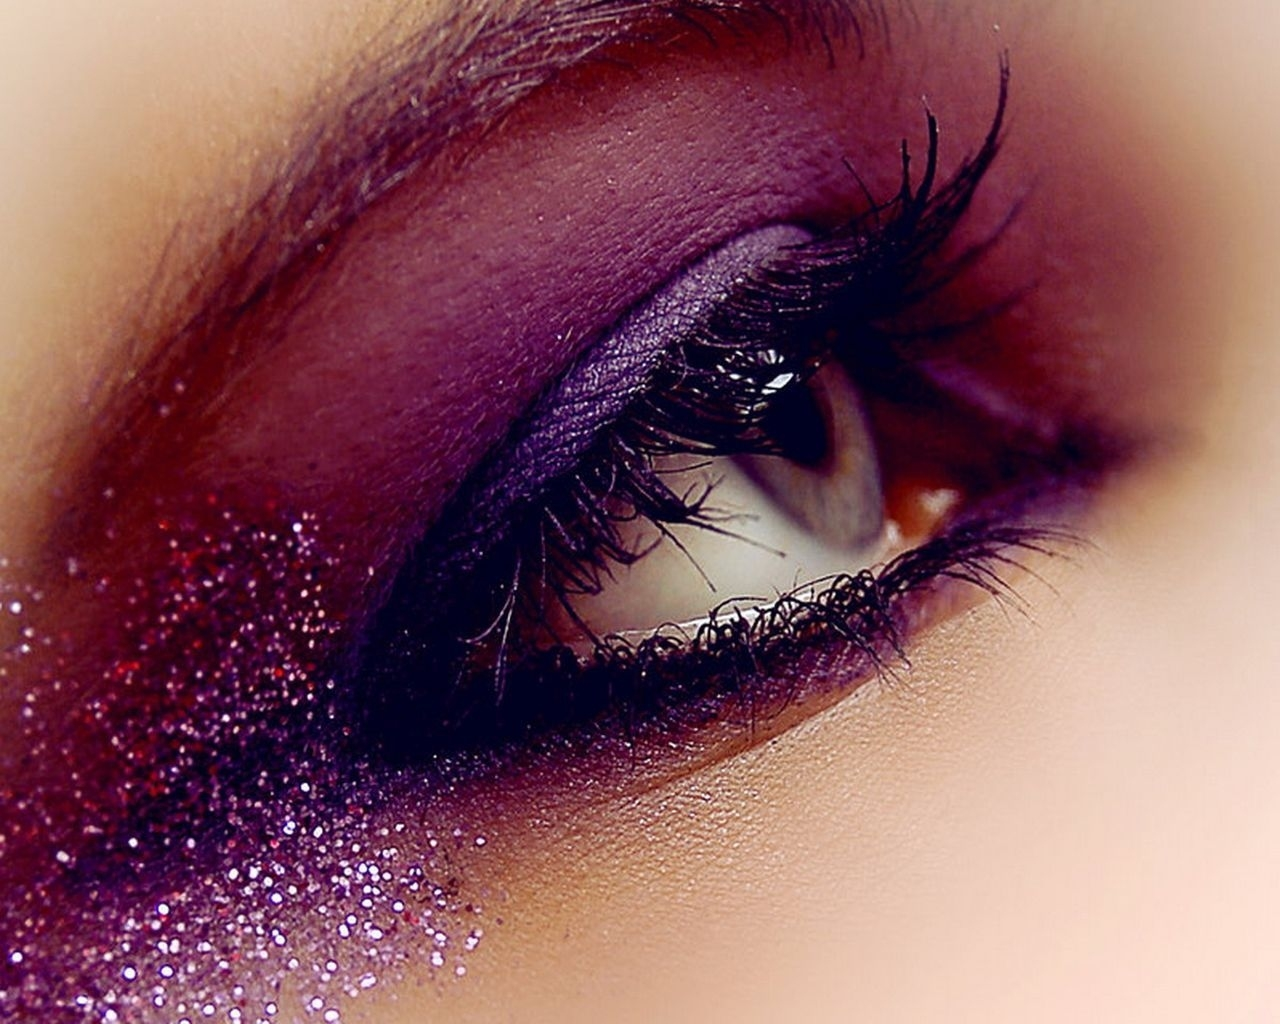 Image Detail For -Free Download High Quality Makeup Eyes Wallpaper intended for Eye Makeup Images Free Download